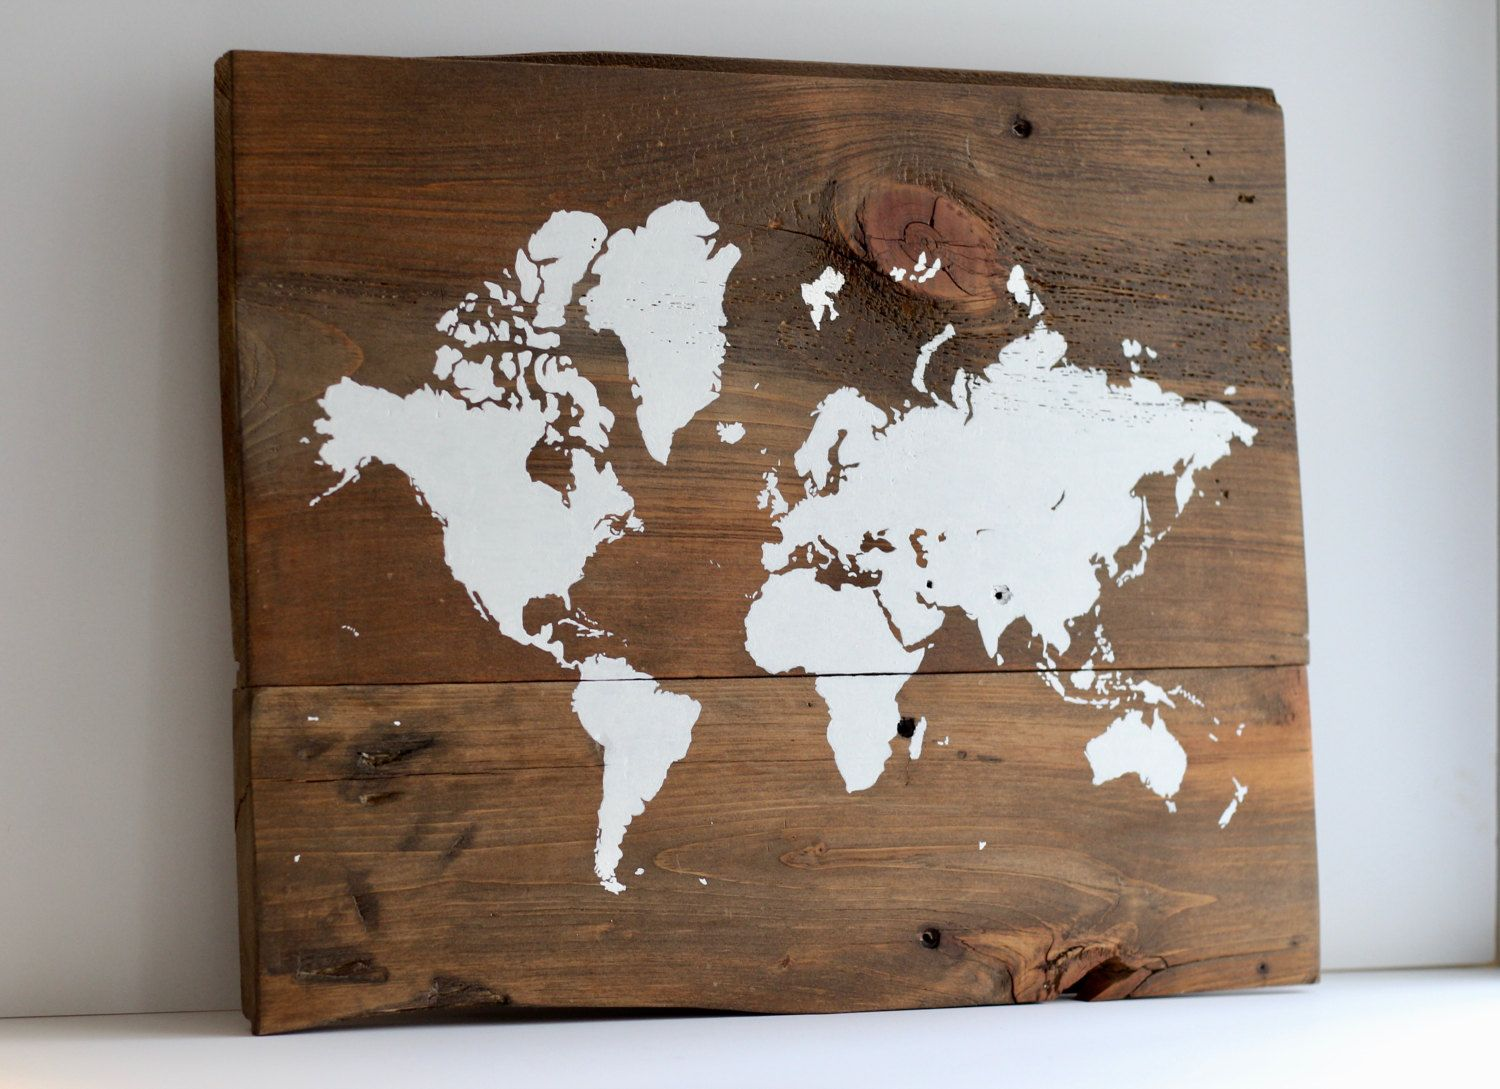 World map on wood rustic wall decor rustic world map map on handmade item by tealbluestudio on etsy world map on wood rustic wall decor gumiabroncs Choice Image